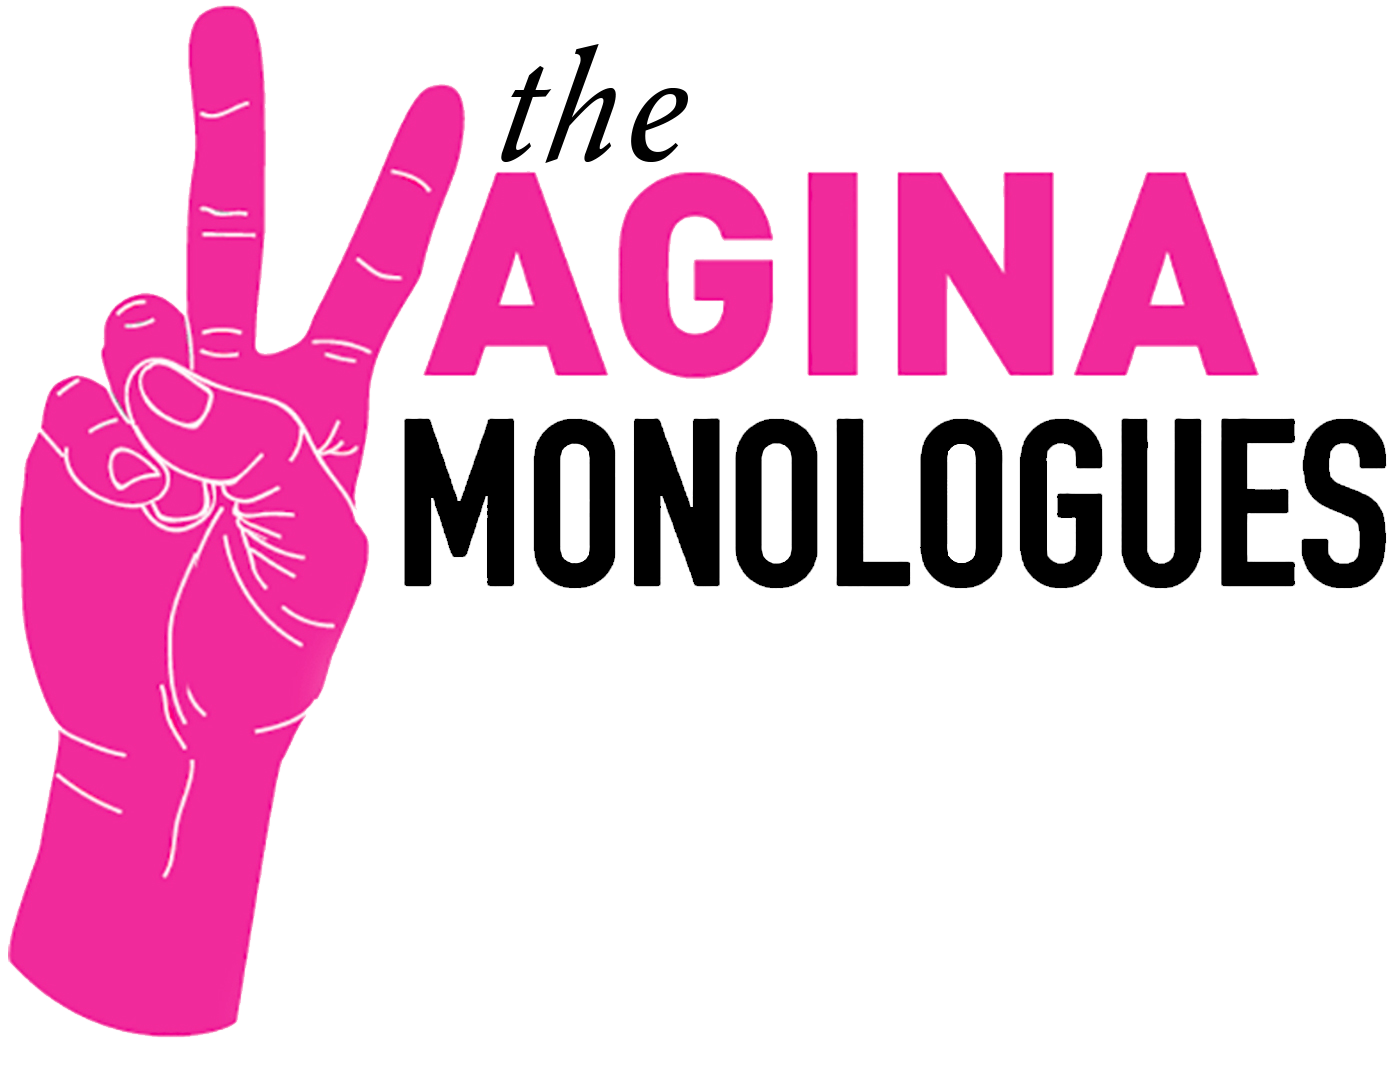 vagina_monologue_peace-sign_black-text_no-background.png